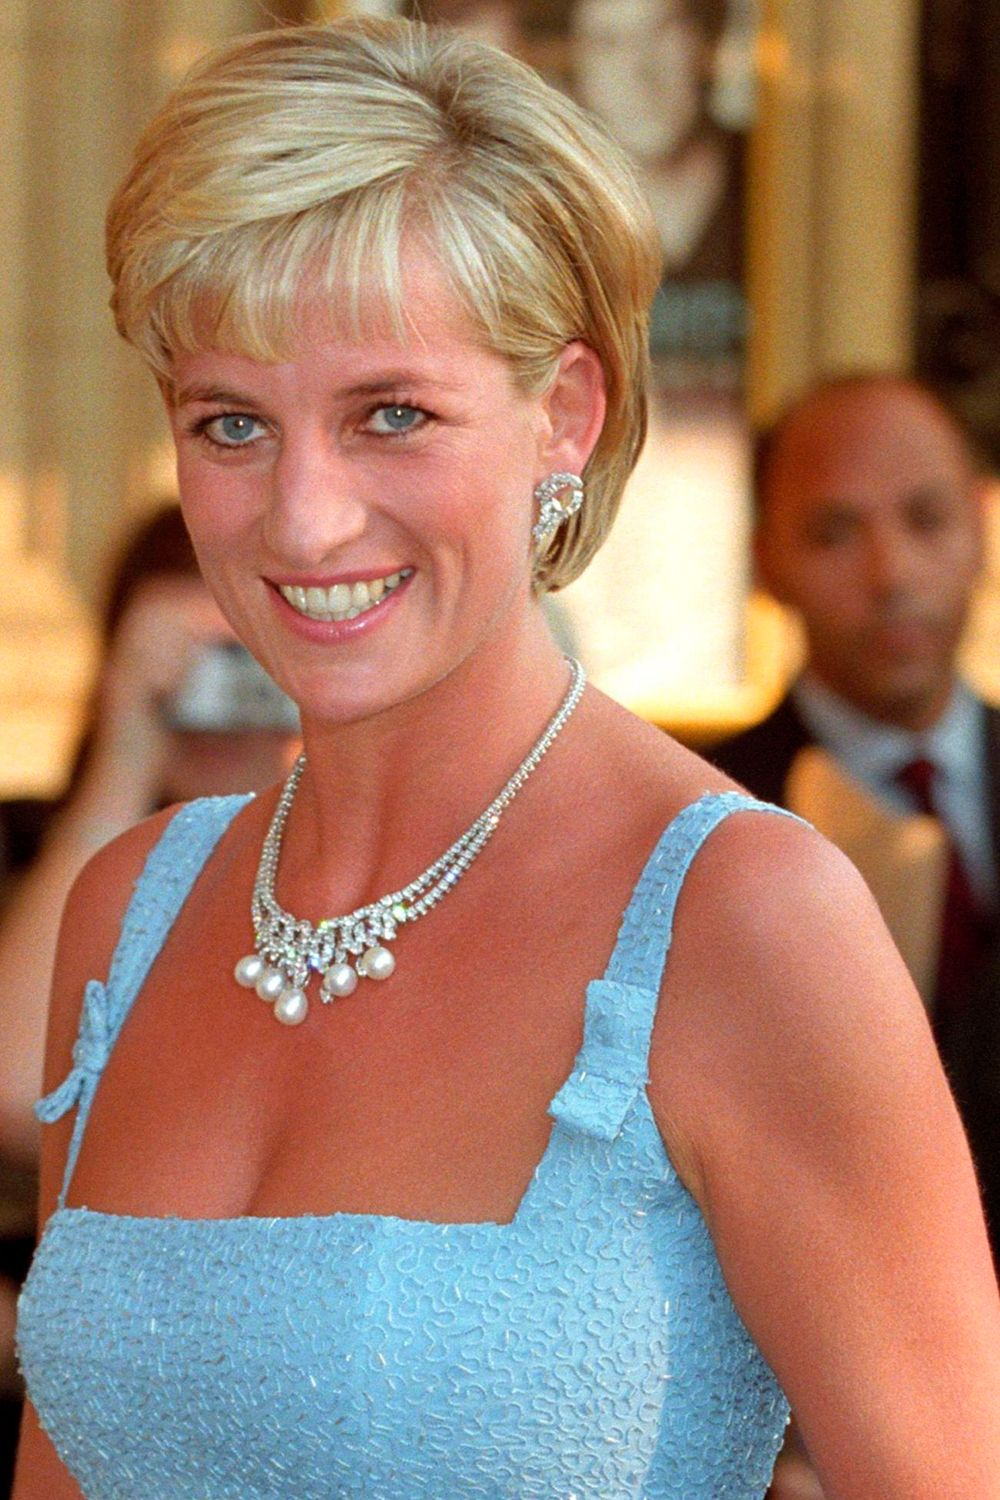 Princess Diana's iconic diamond and pearl necklace is up for auction